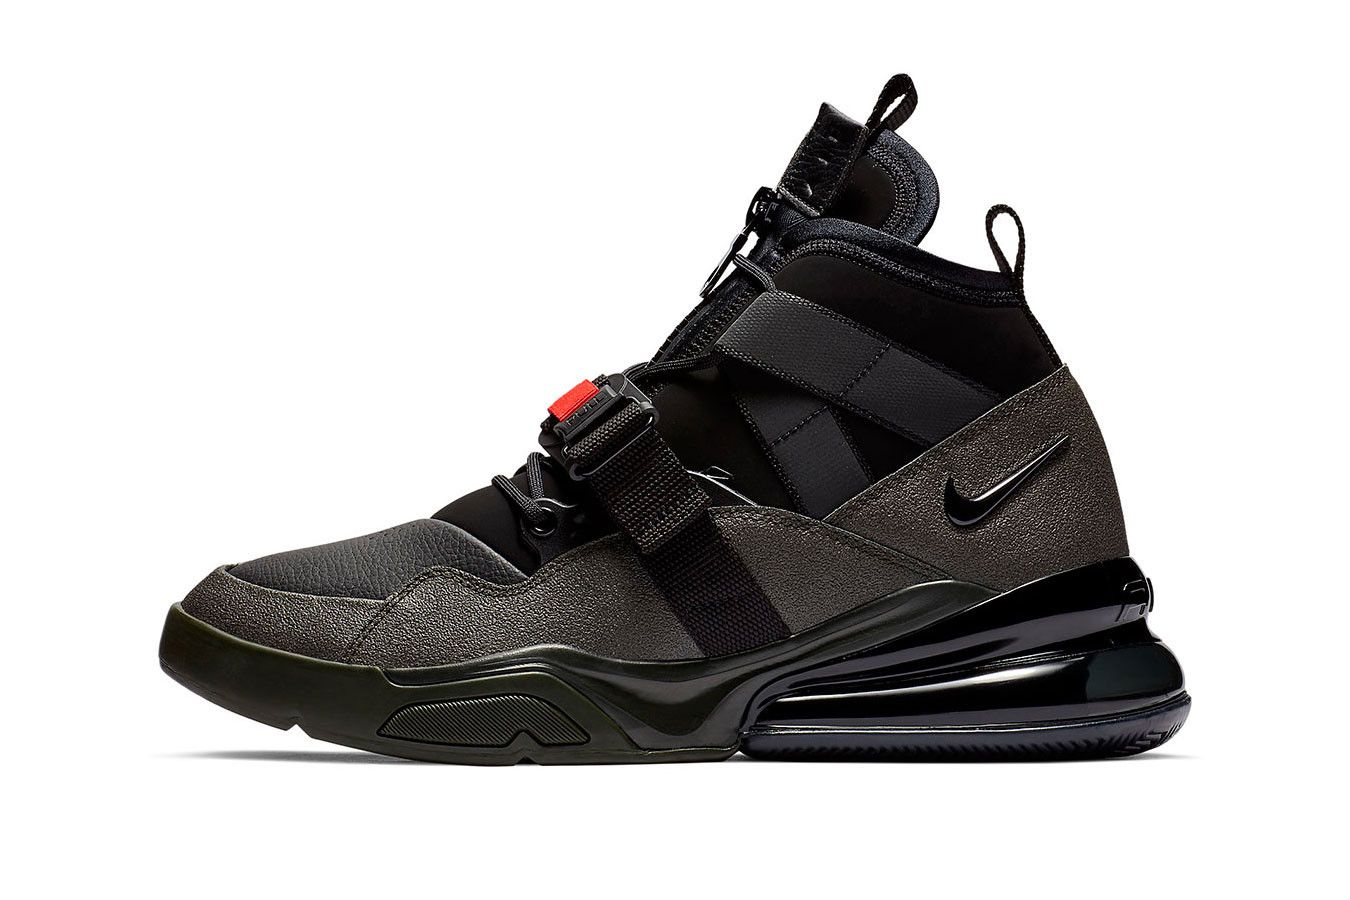 Nike Air Force 270 Utility Straps Up in